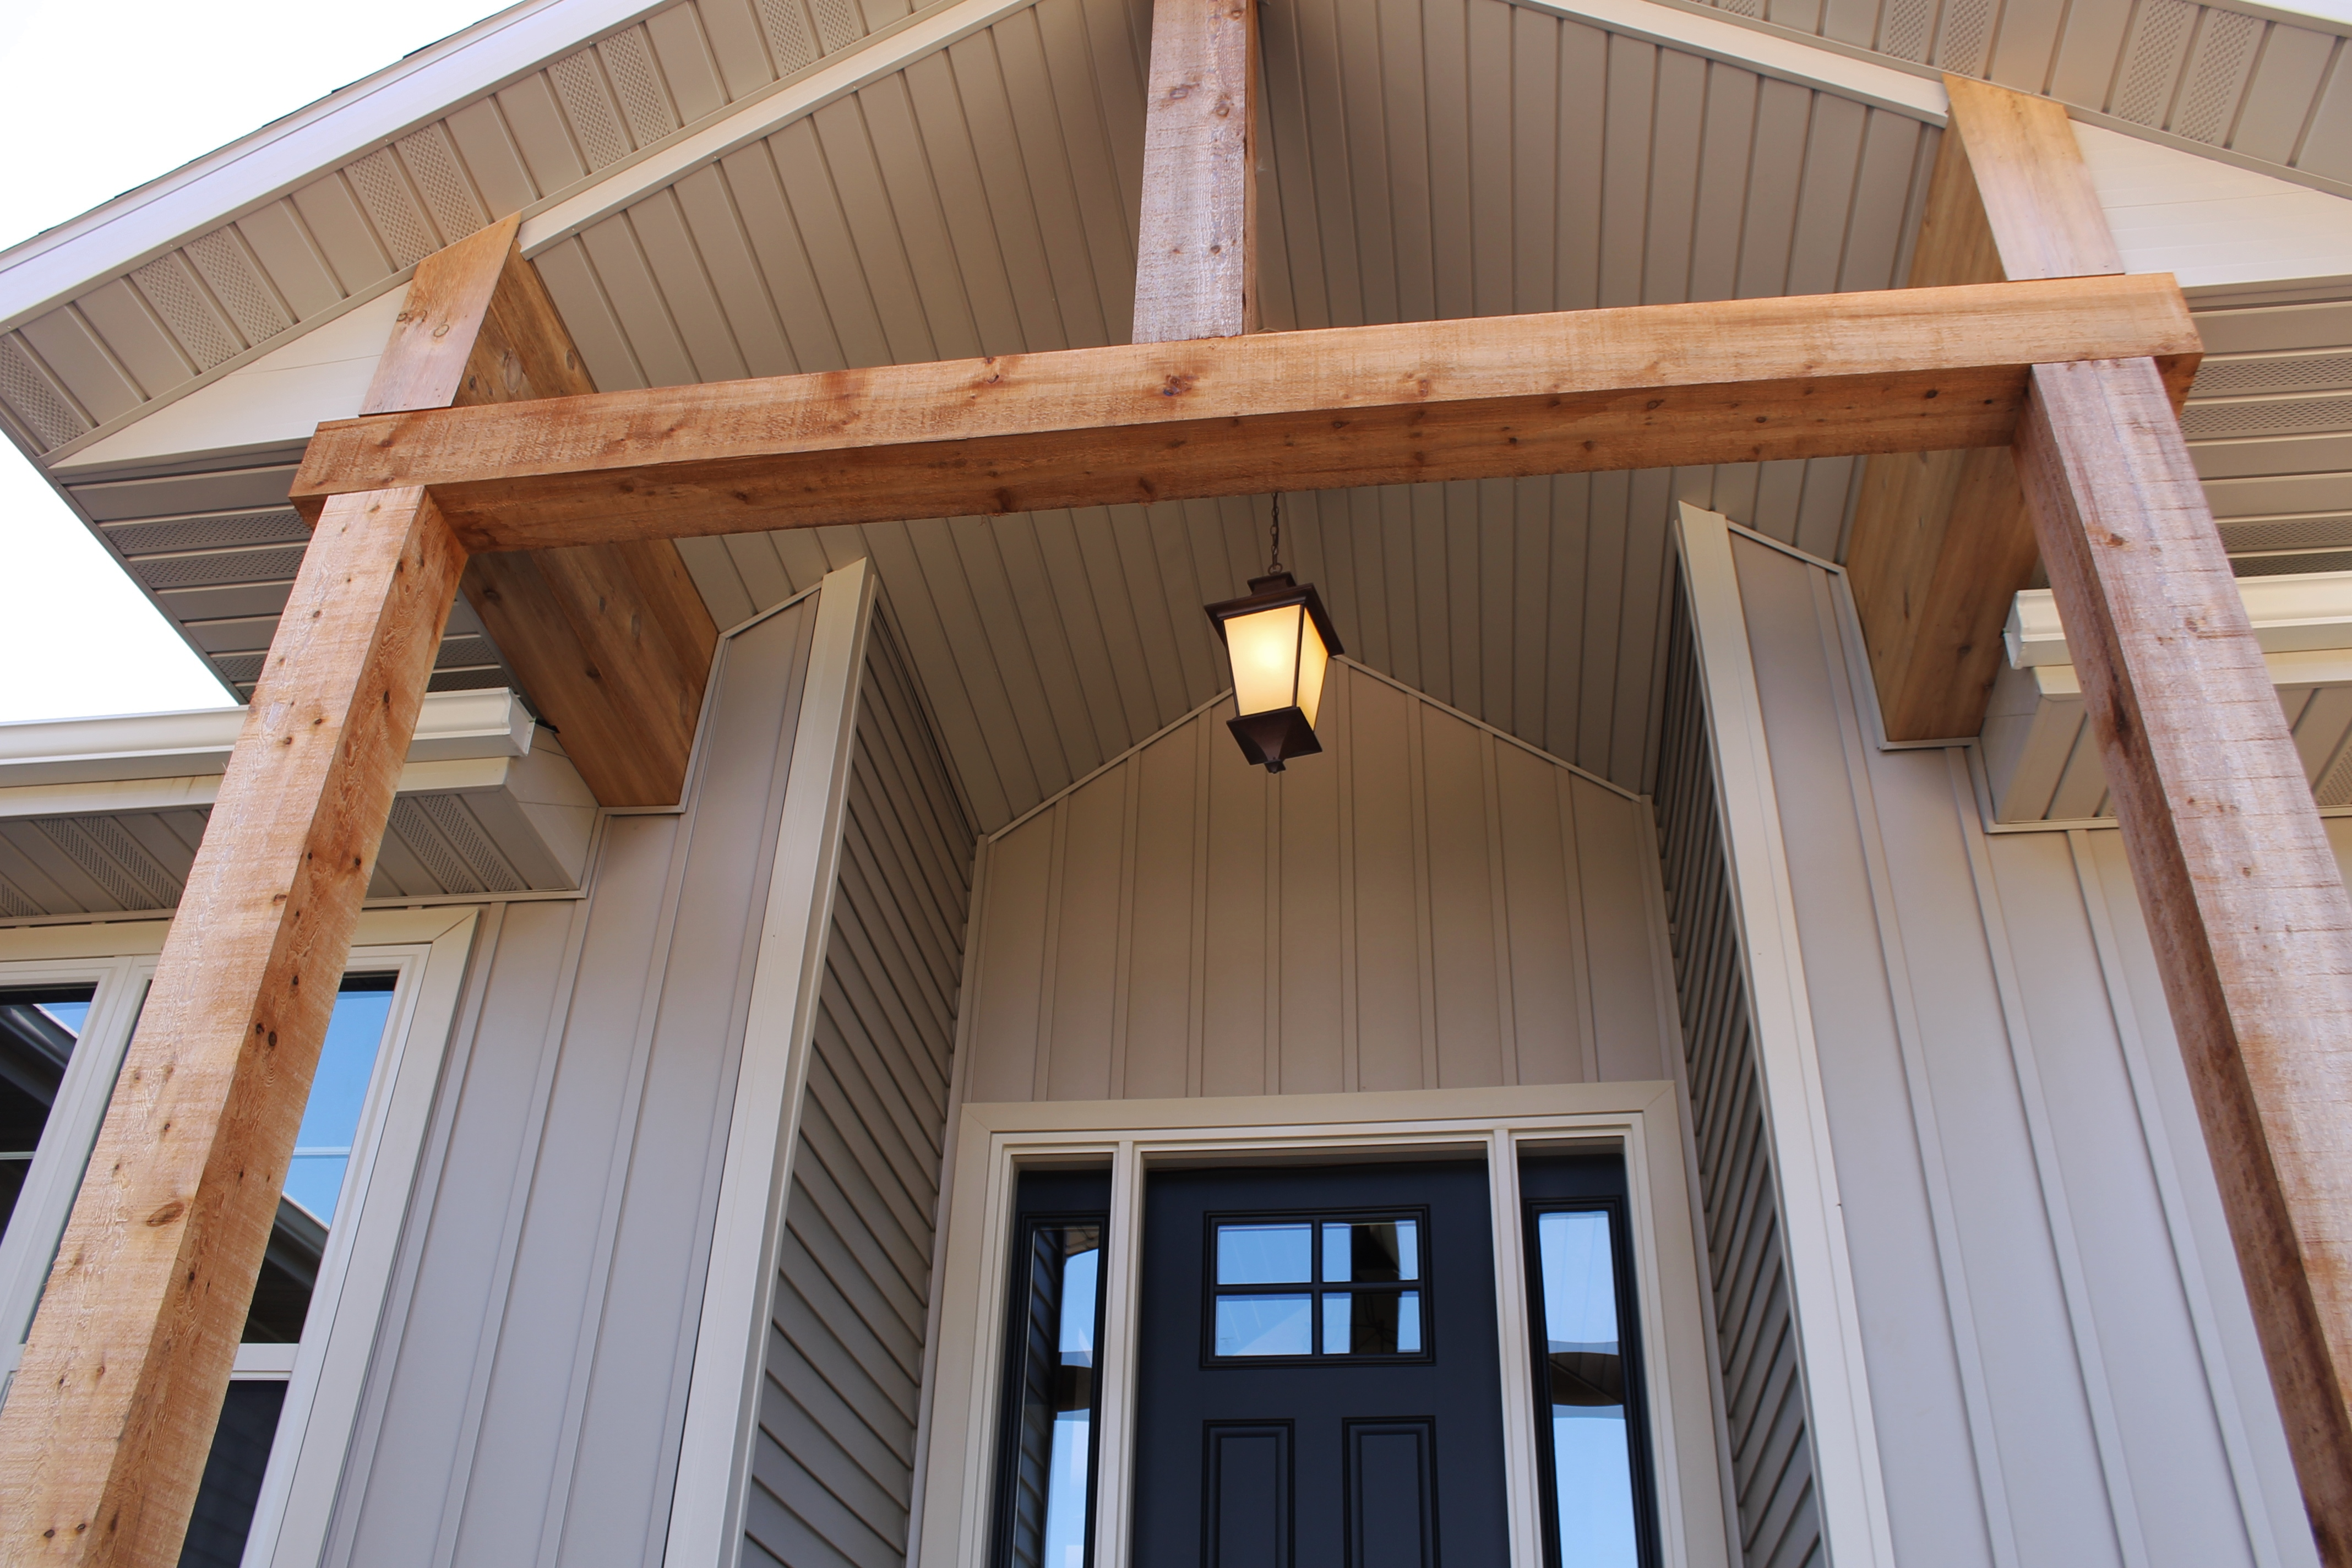 Dressing Up The Exterior With Gable Details Katie Jane